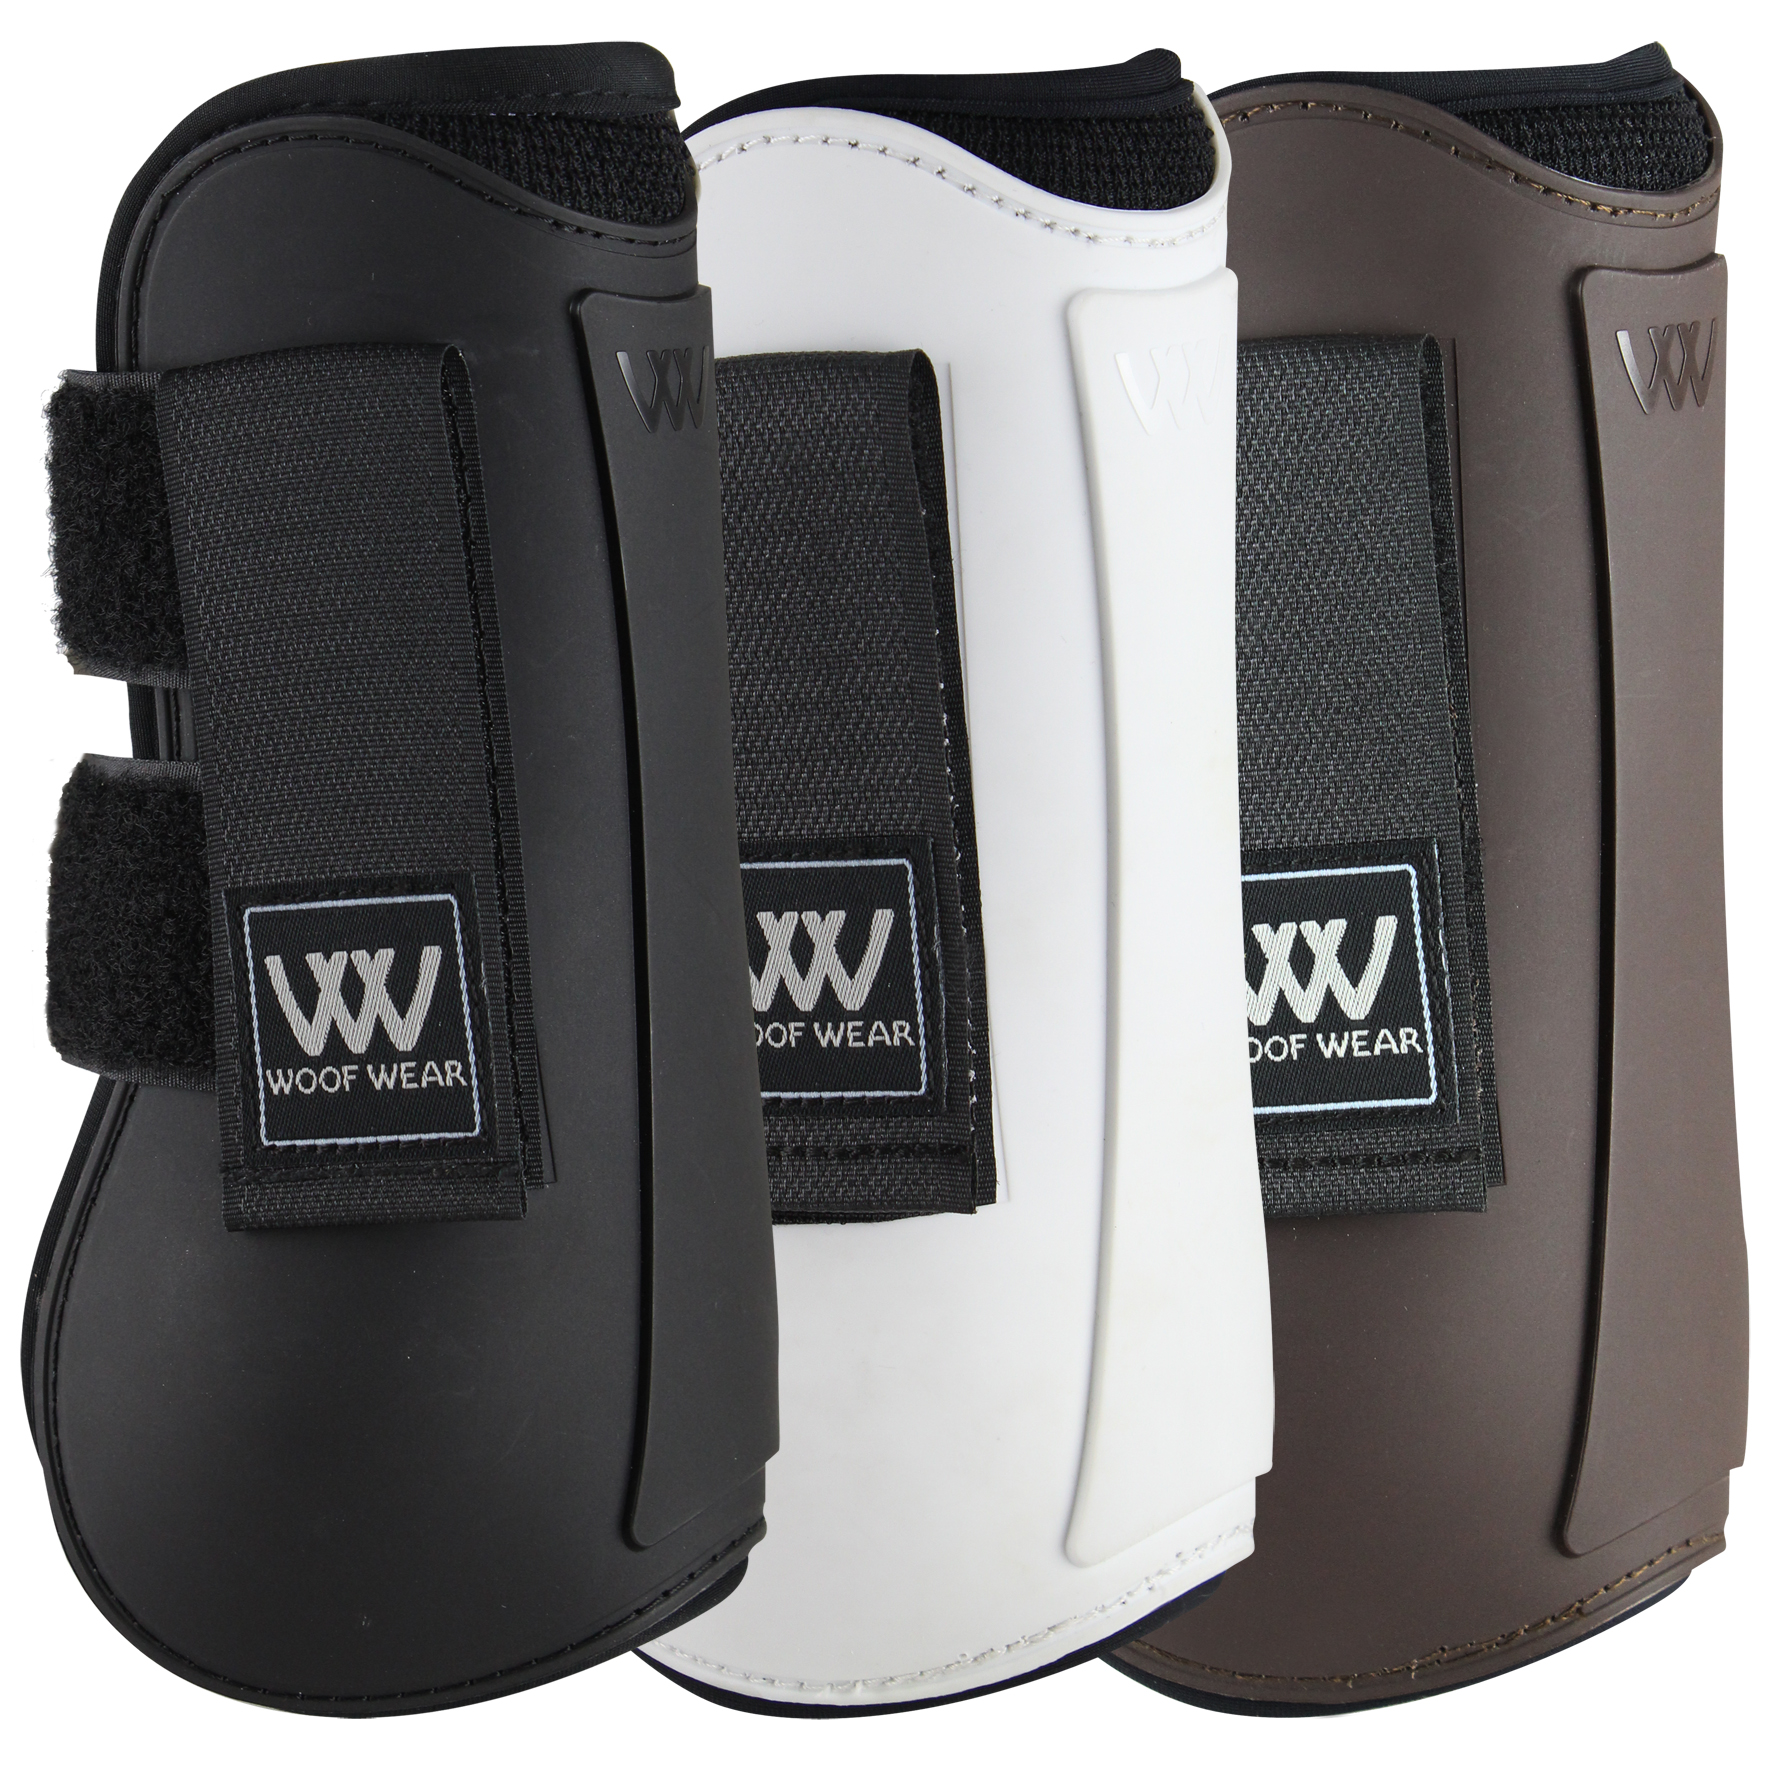 WB0044 Pro Tendon Trio - Woof Wear's Pro Range receives a facelift for 2013